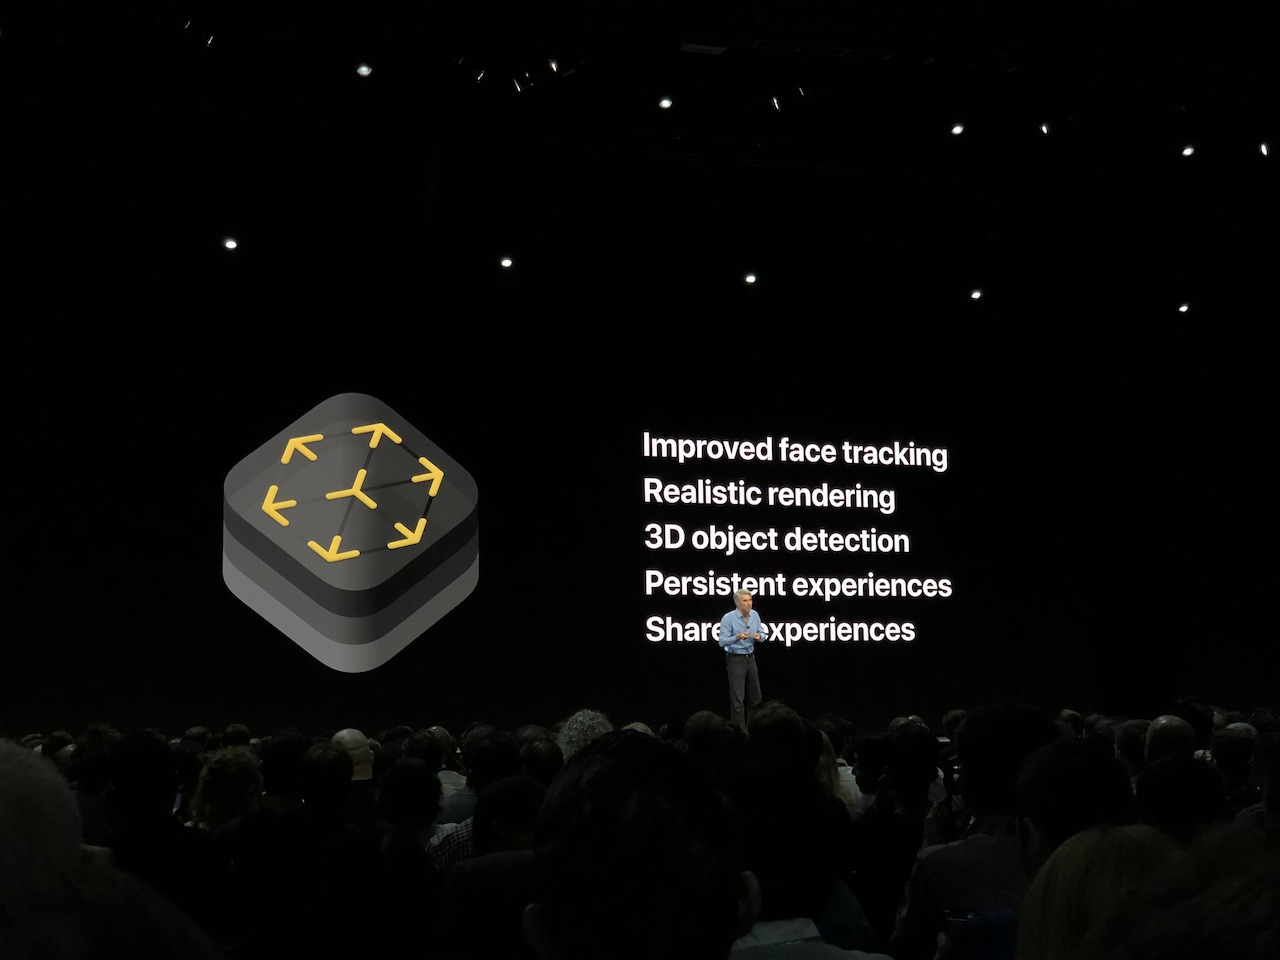 Apple is moving fast in Augmented Realty.